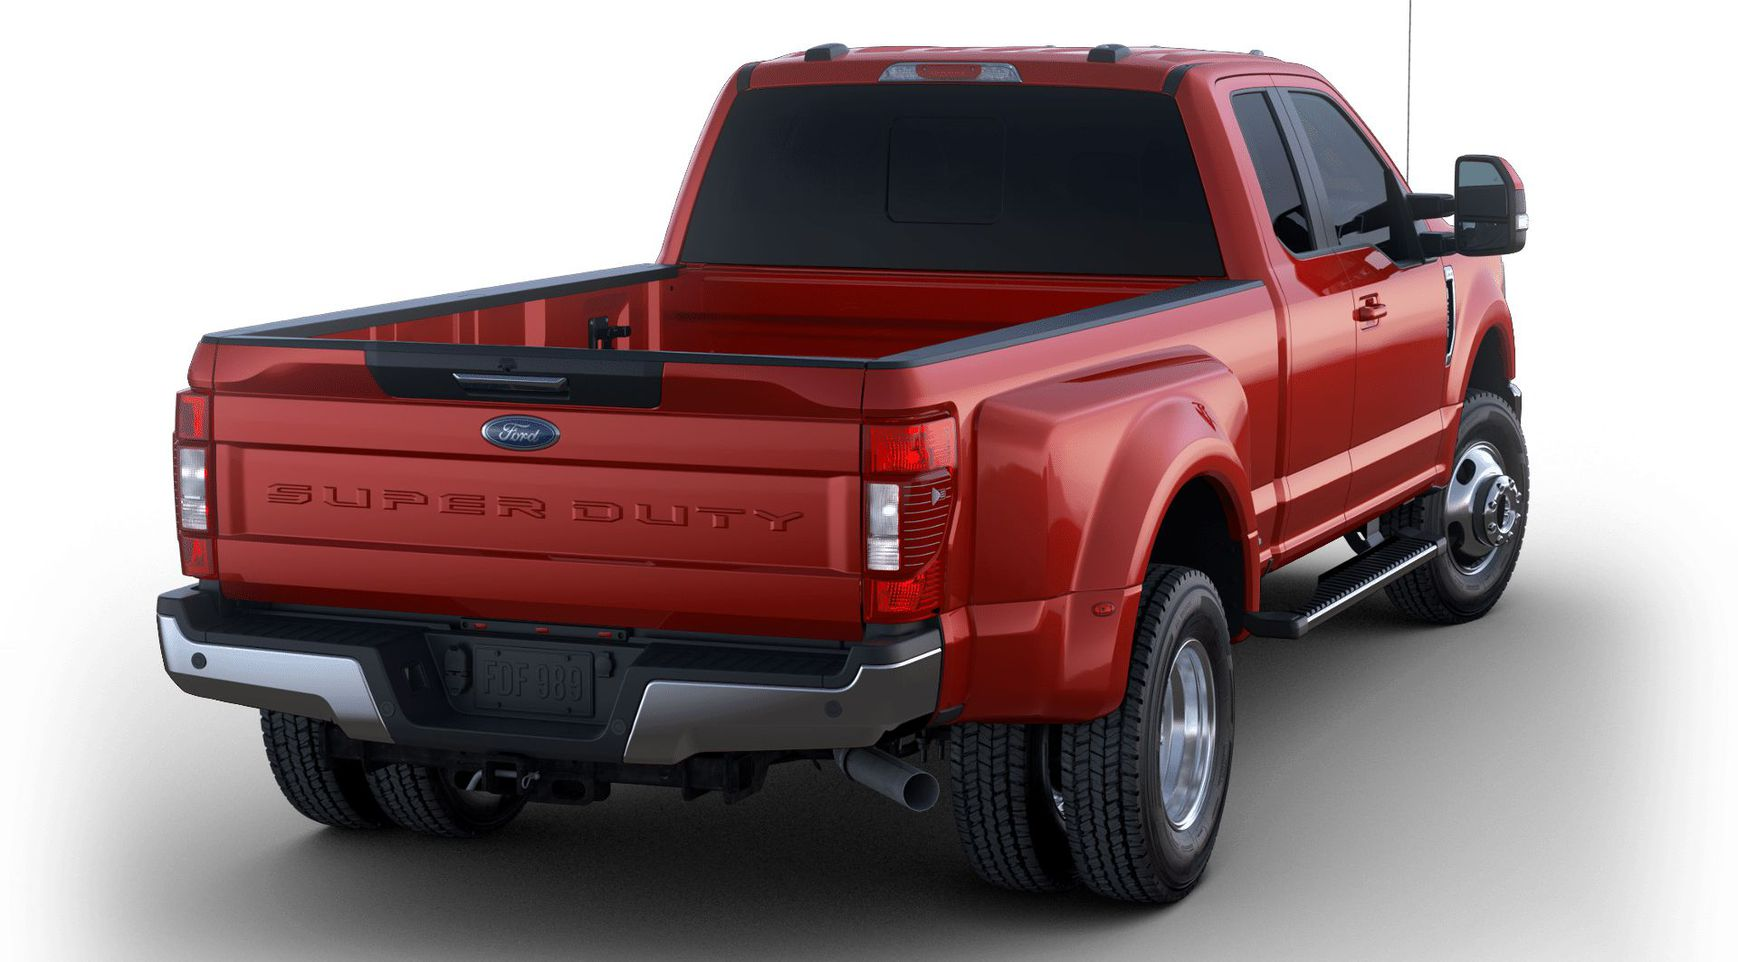 Ford F-350 2020 Lariat 6.7 V8 OHV Power Stroke® Turbo Diesel Дизель 10 ст АКПП Задний